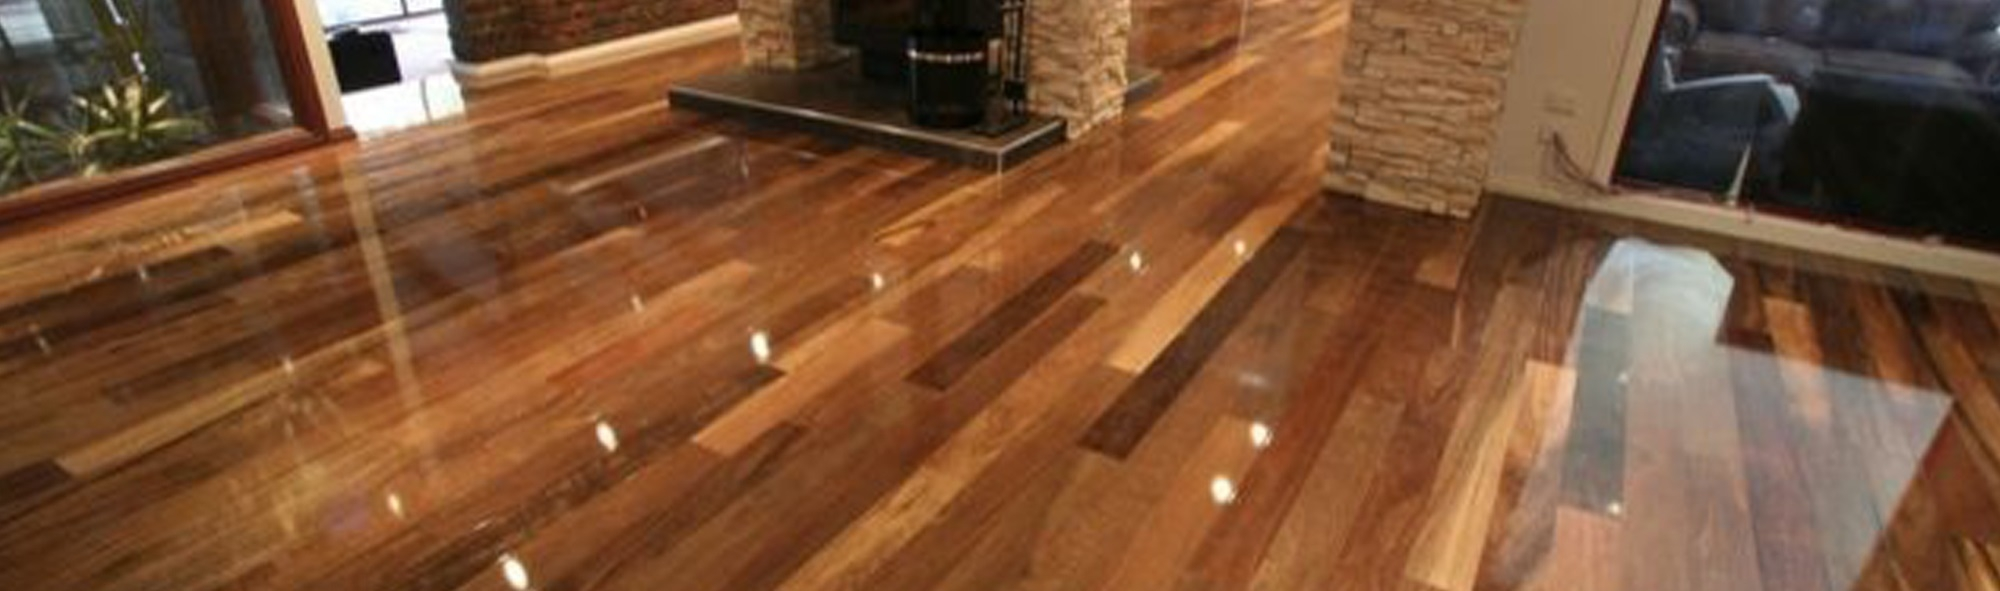 Permalink to Clear Coat Epoxy For Wood Floors